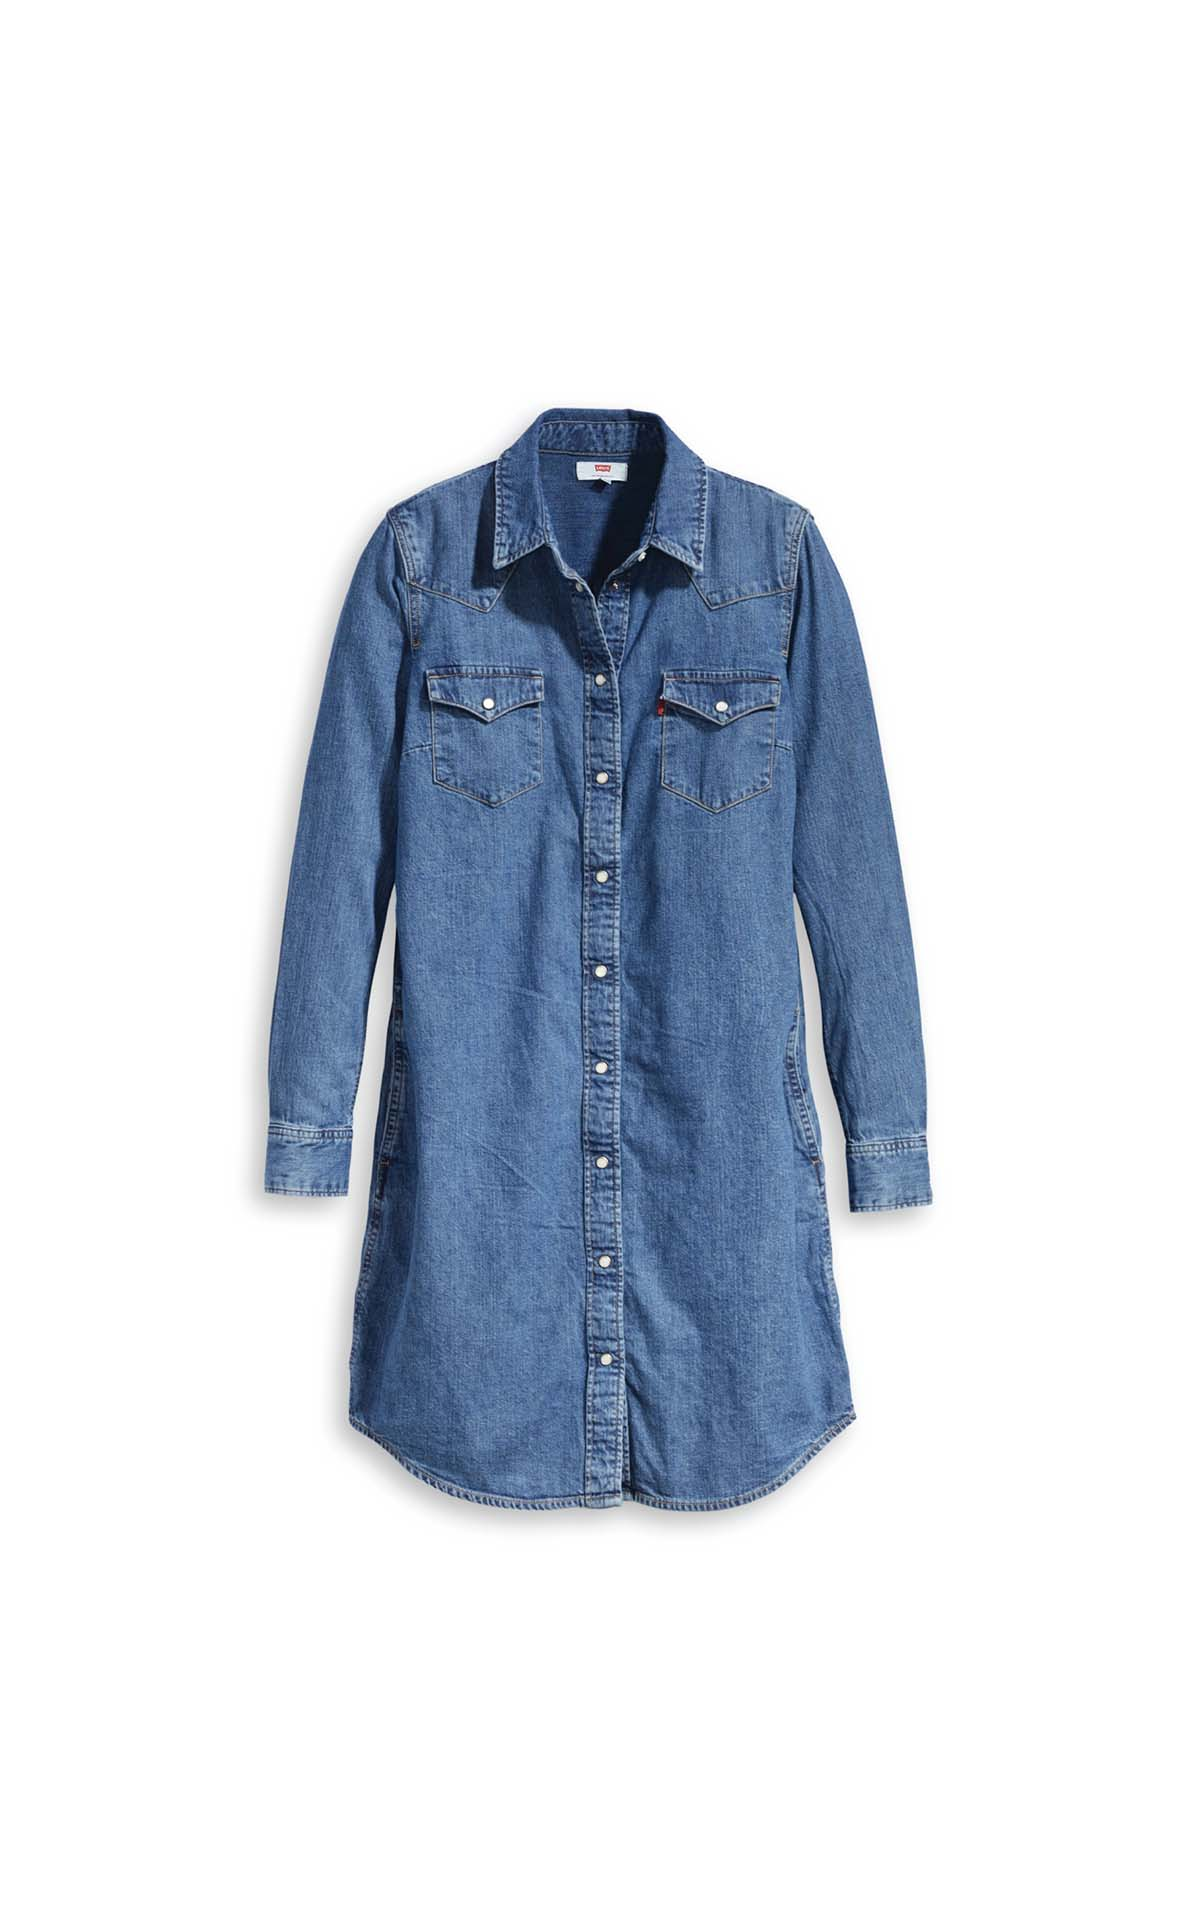 Levi's Ultimate western dress freedom in blue at The Bicester Village Shopping Collection